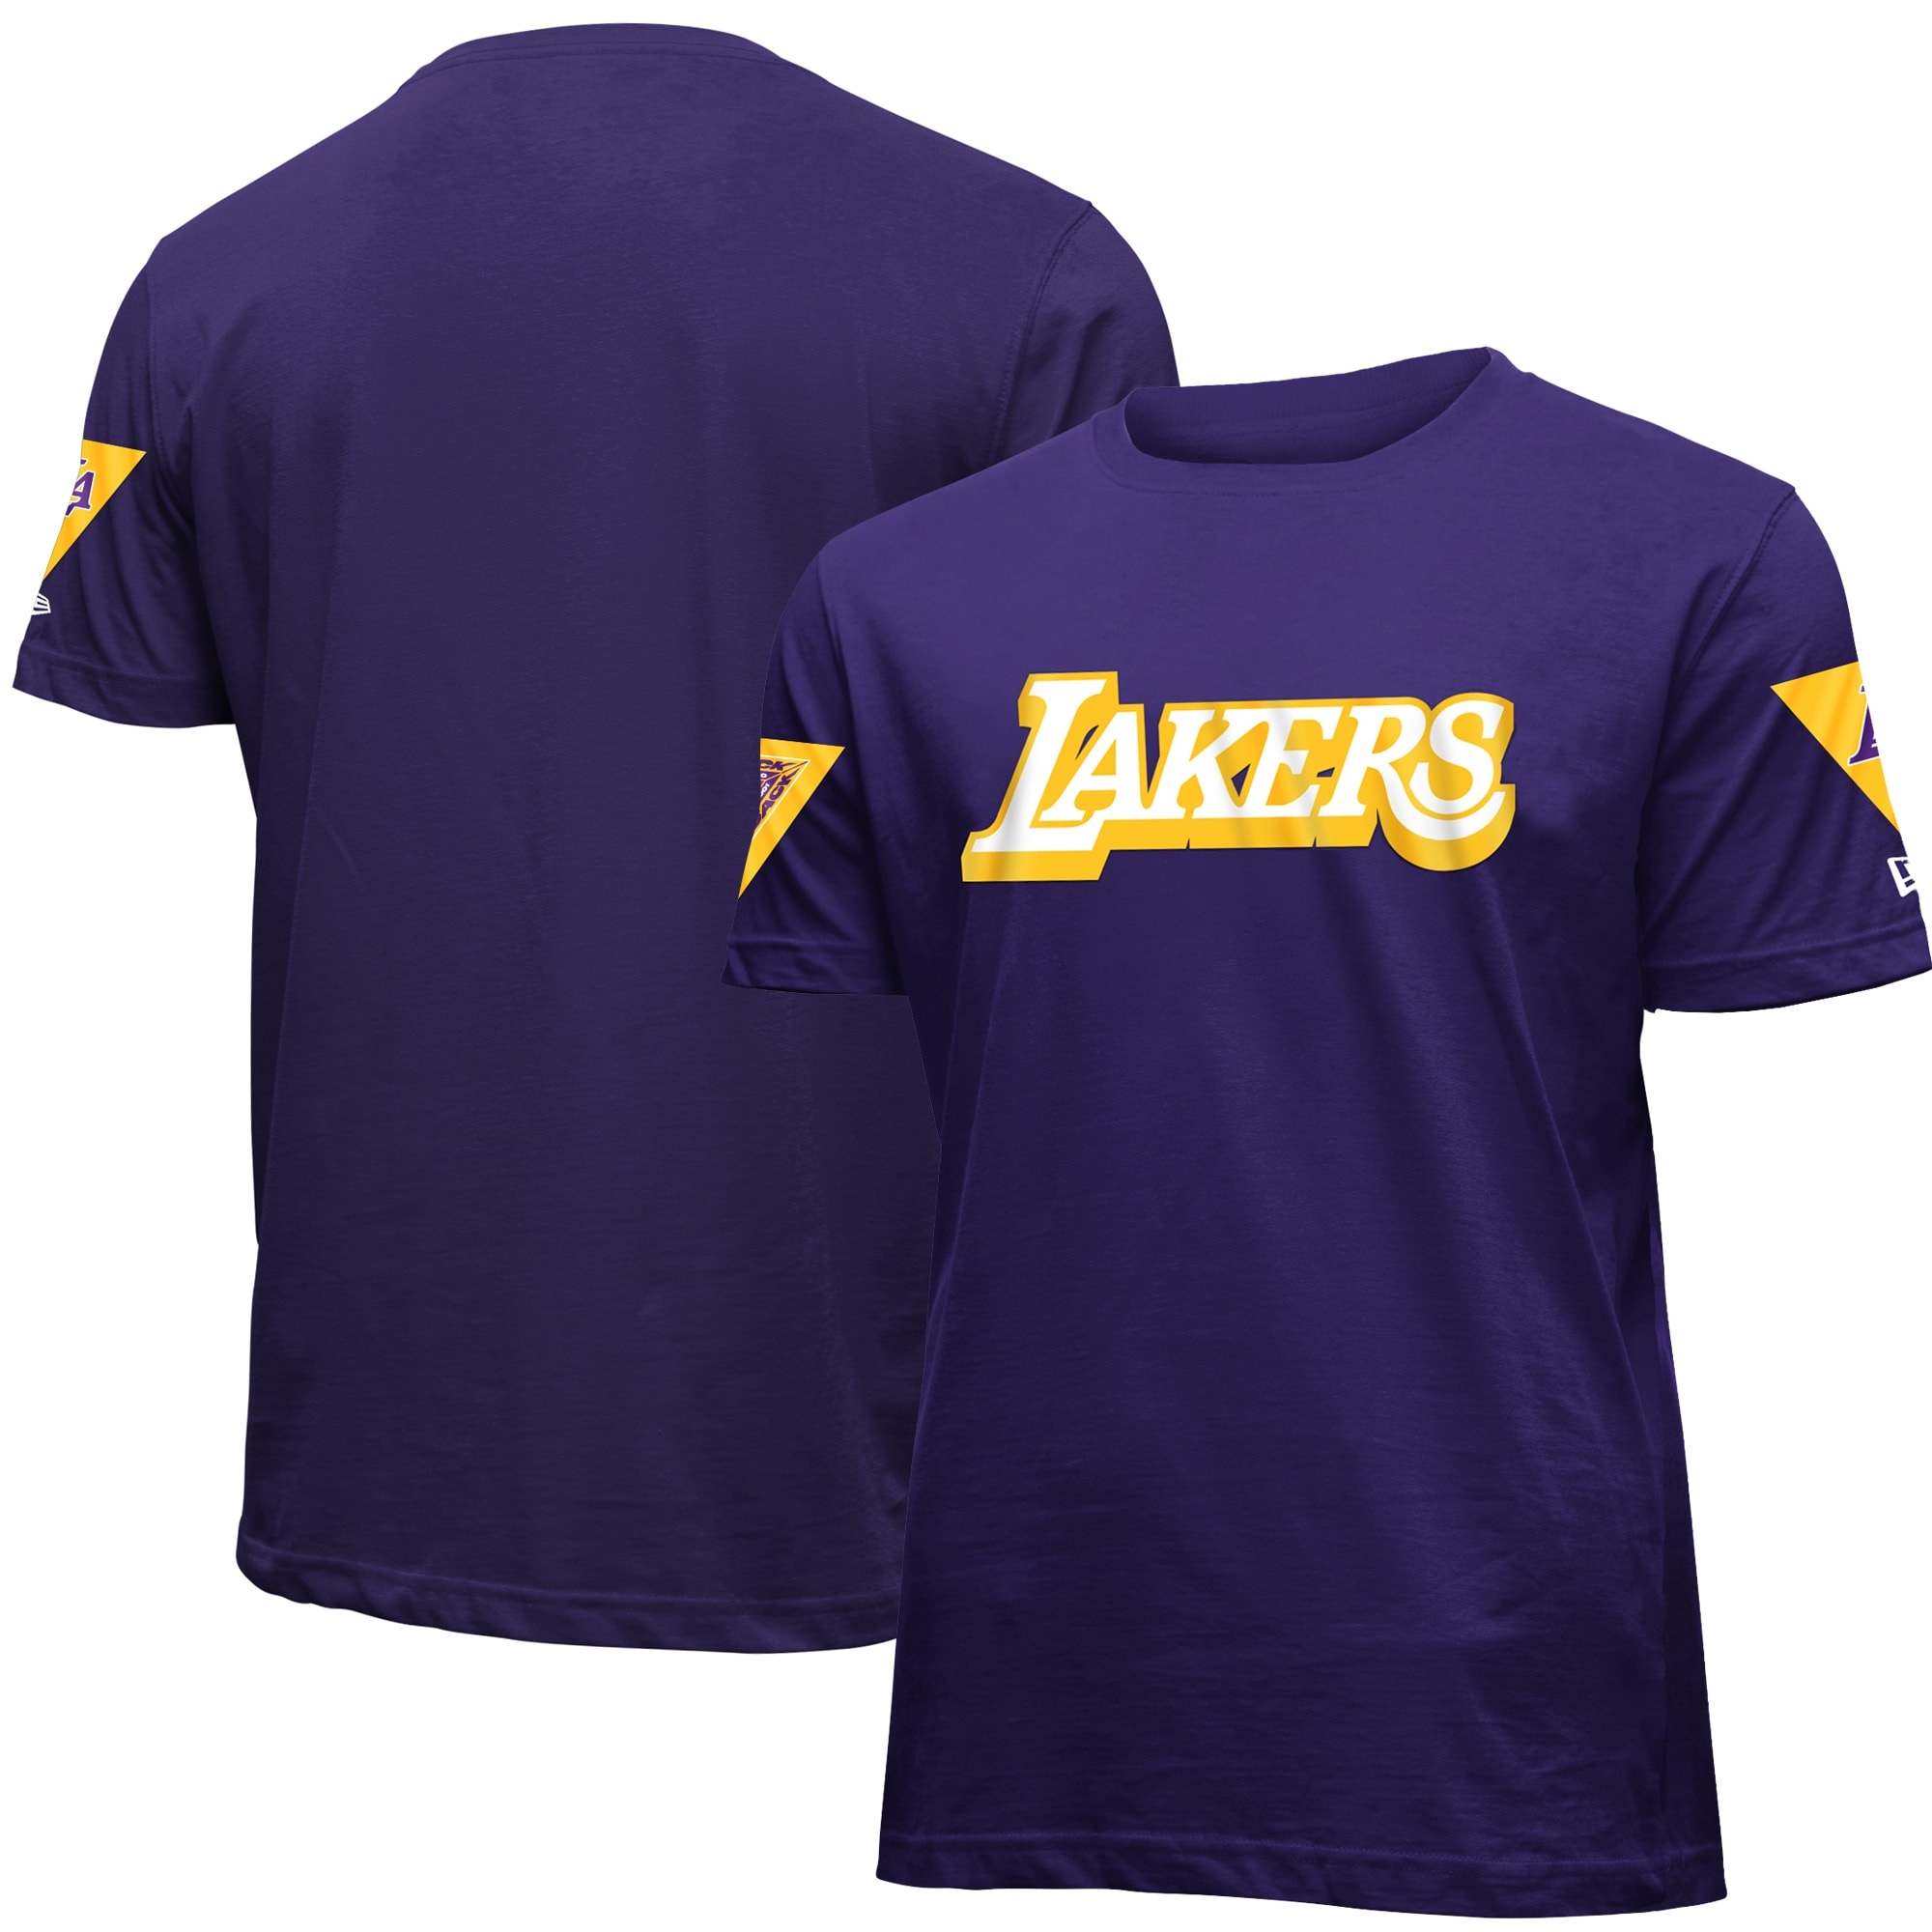 Los Angeles Lakers New Era 2019/20 City Edition Brushed Jersey T-Shirt - Purple